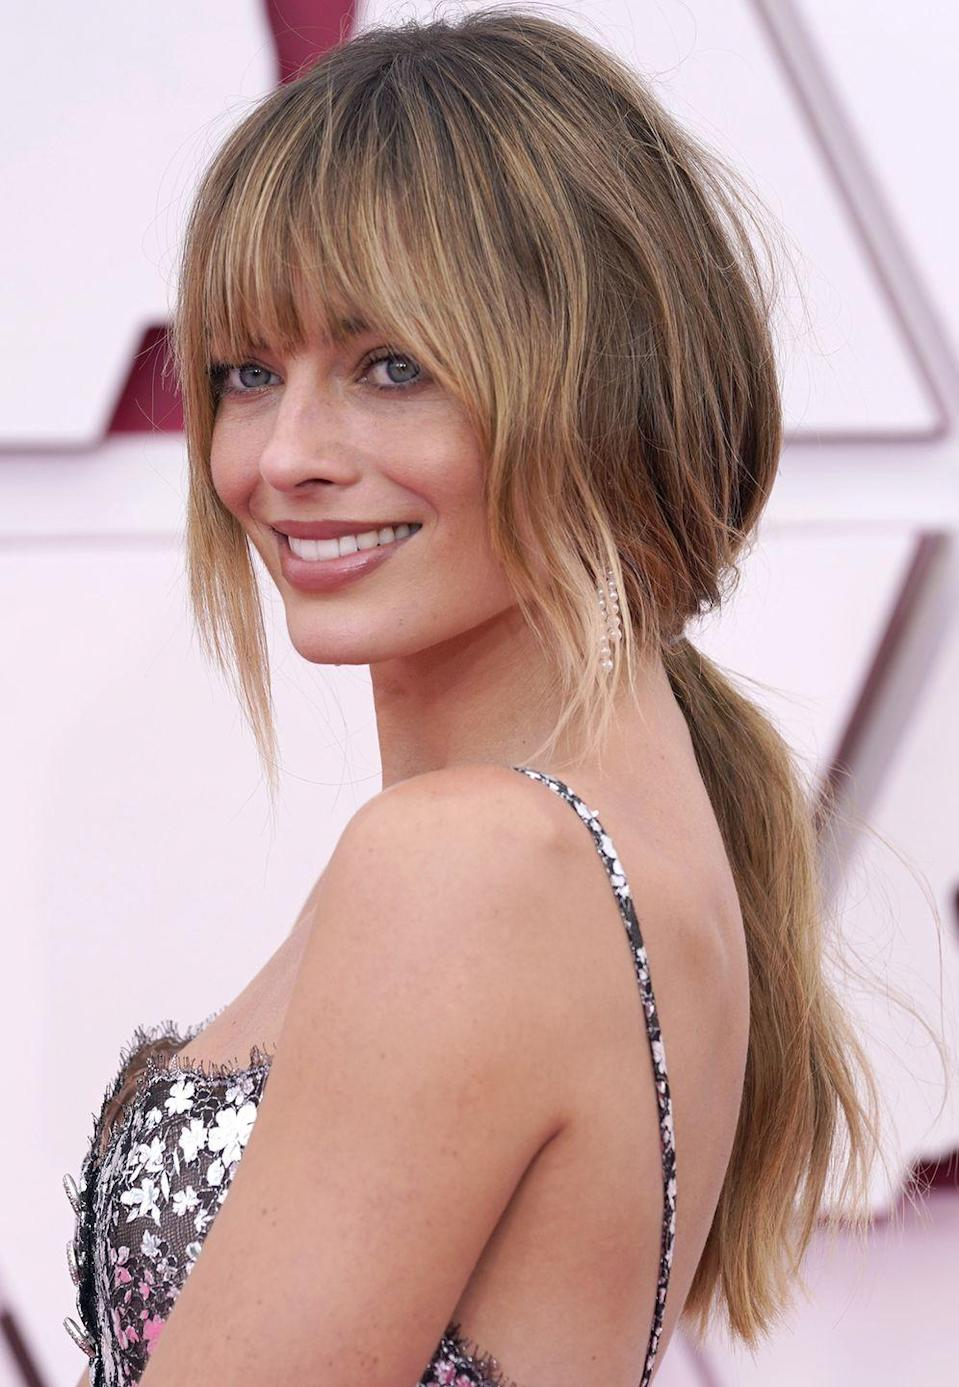 <p><strong>Margot Robbie</strong>'s hair is romantic and undone while still looking fresh. For color like this, keep your roots natural and begin a gradual fade in color to sun-kissed blonde. Eye-sweeping bangs make this color even dreamier. </p>